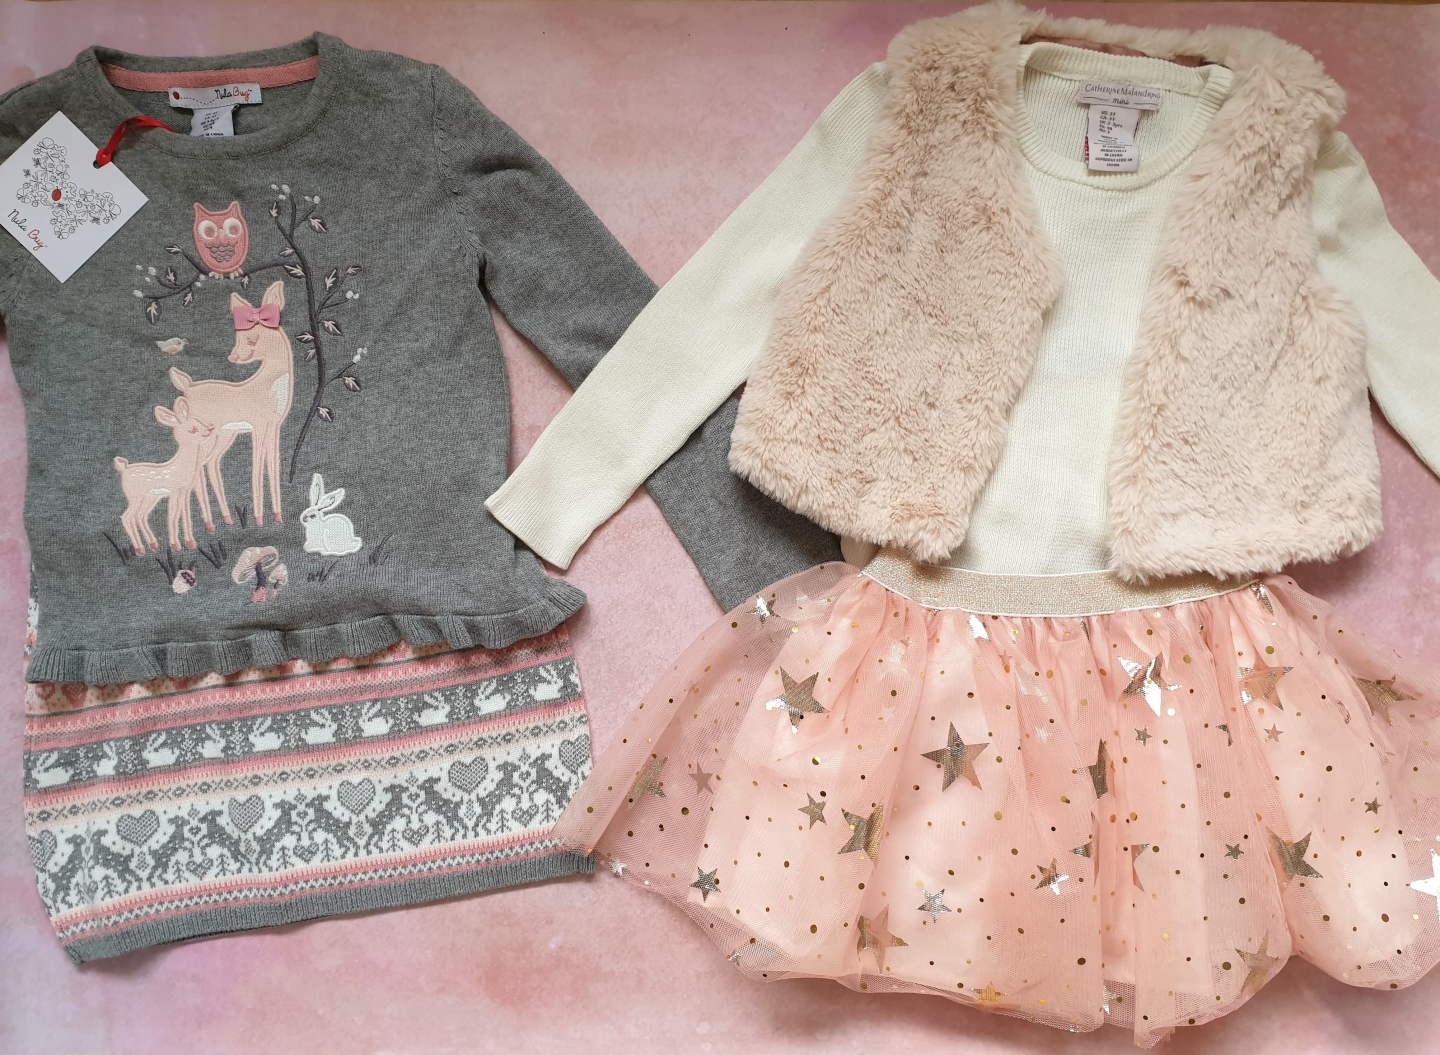 Beautiful girls winter outfits from TK Maxx, Oxford Street